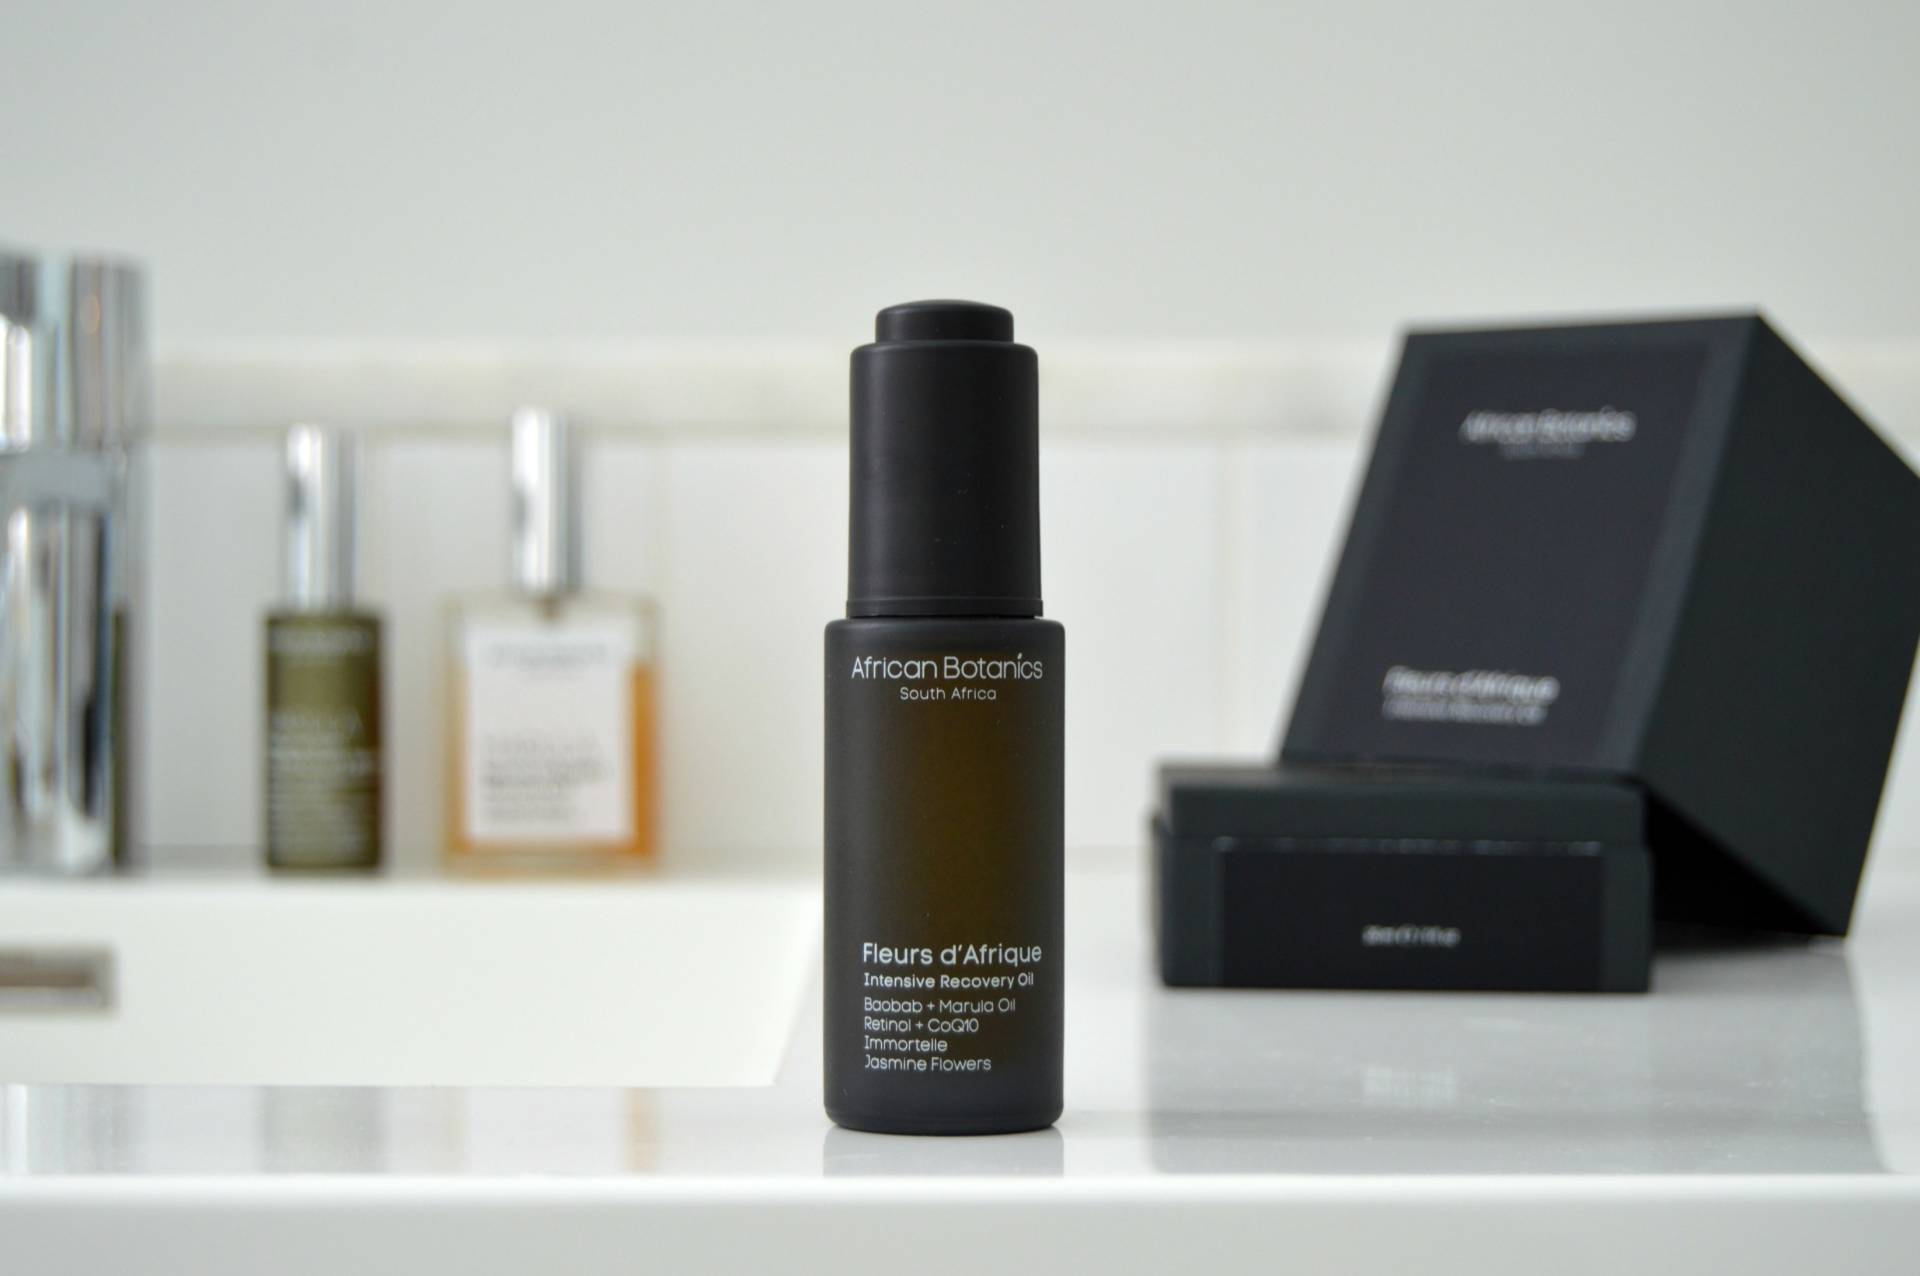 african botanics new oil review inhautepursuit eco luxury innovation skincare